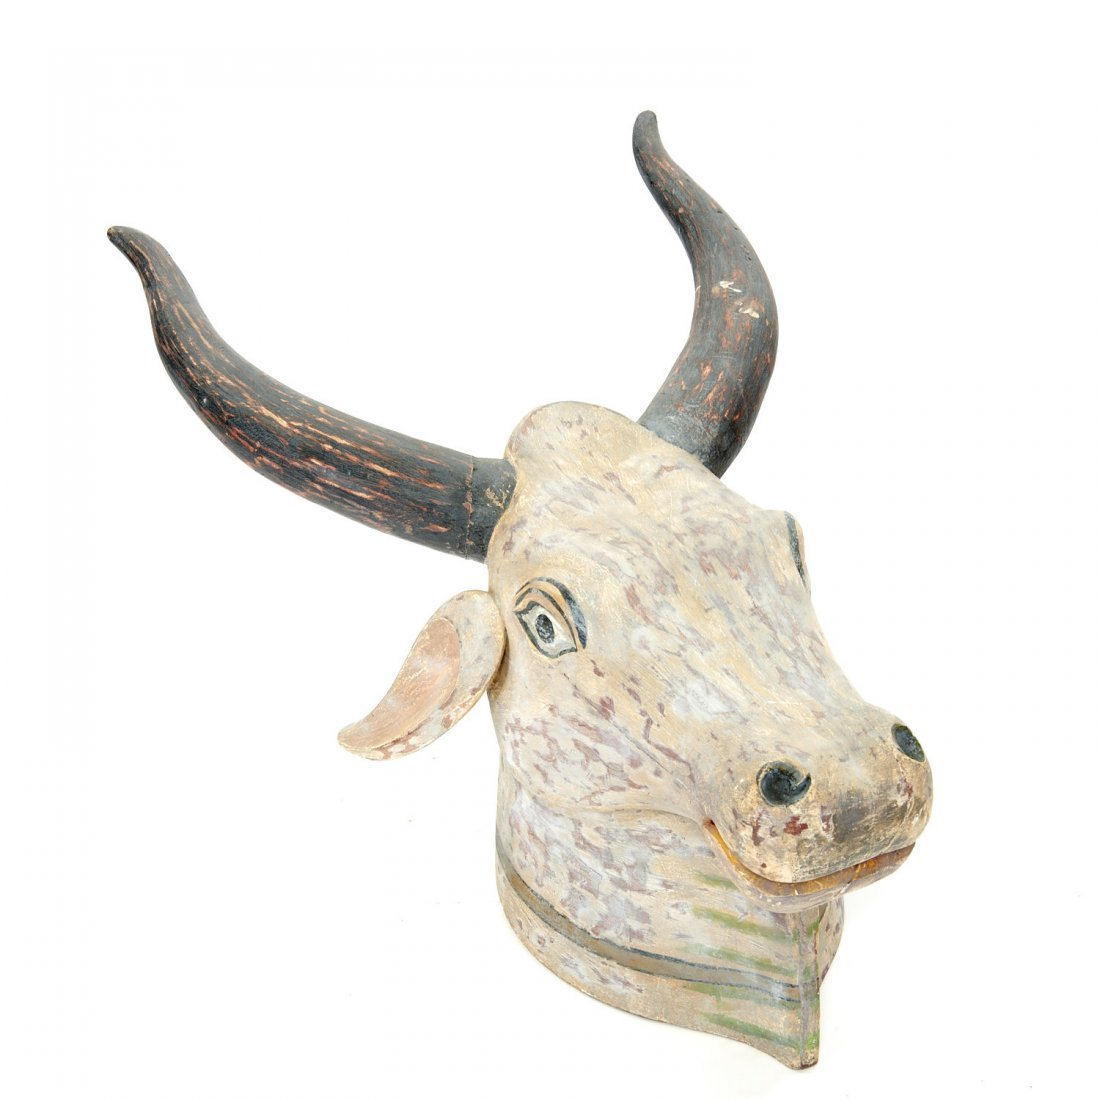 Life size Indian polychrome painted bull's head